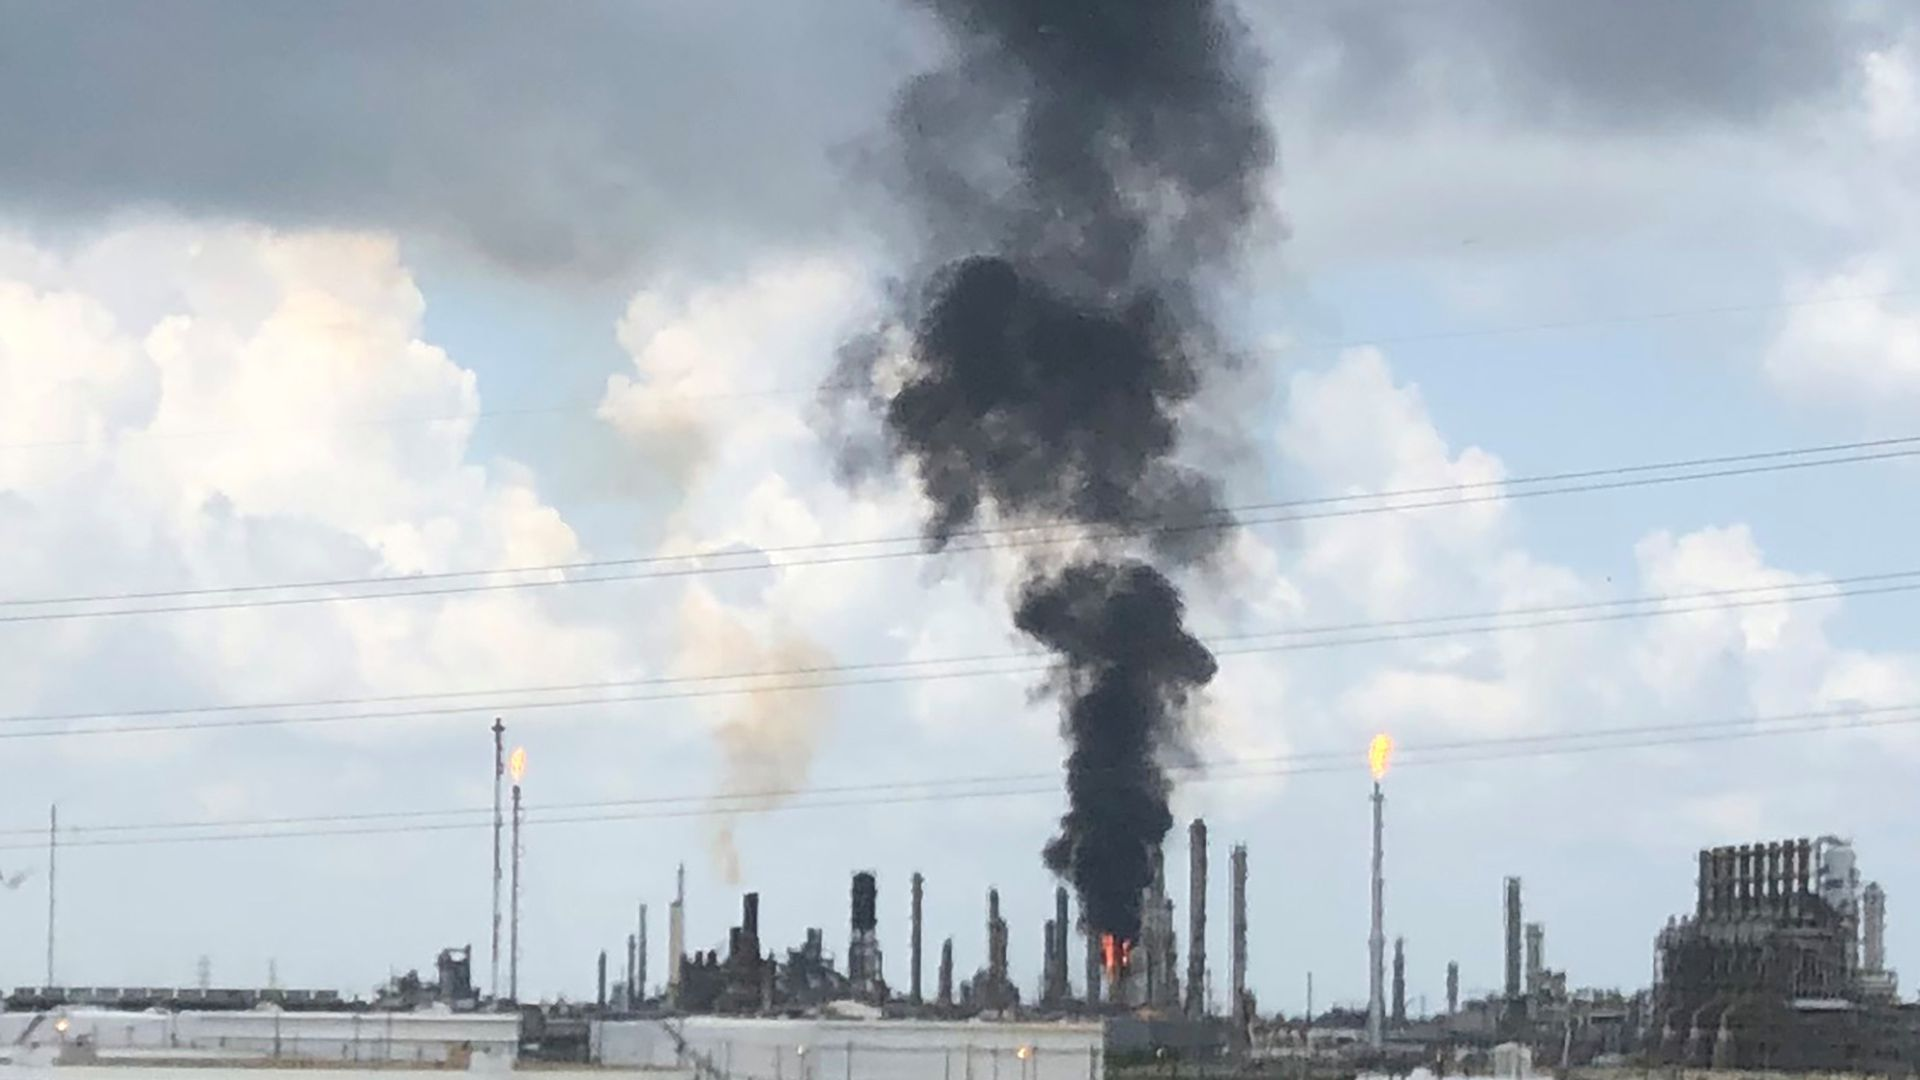 Smoke rises from a fire at Exxon Mobil's refining and chemical plant complex in Baytown, near Houston, Texas.